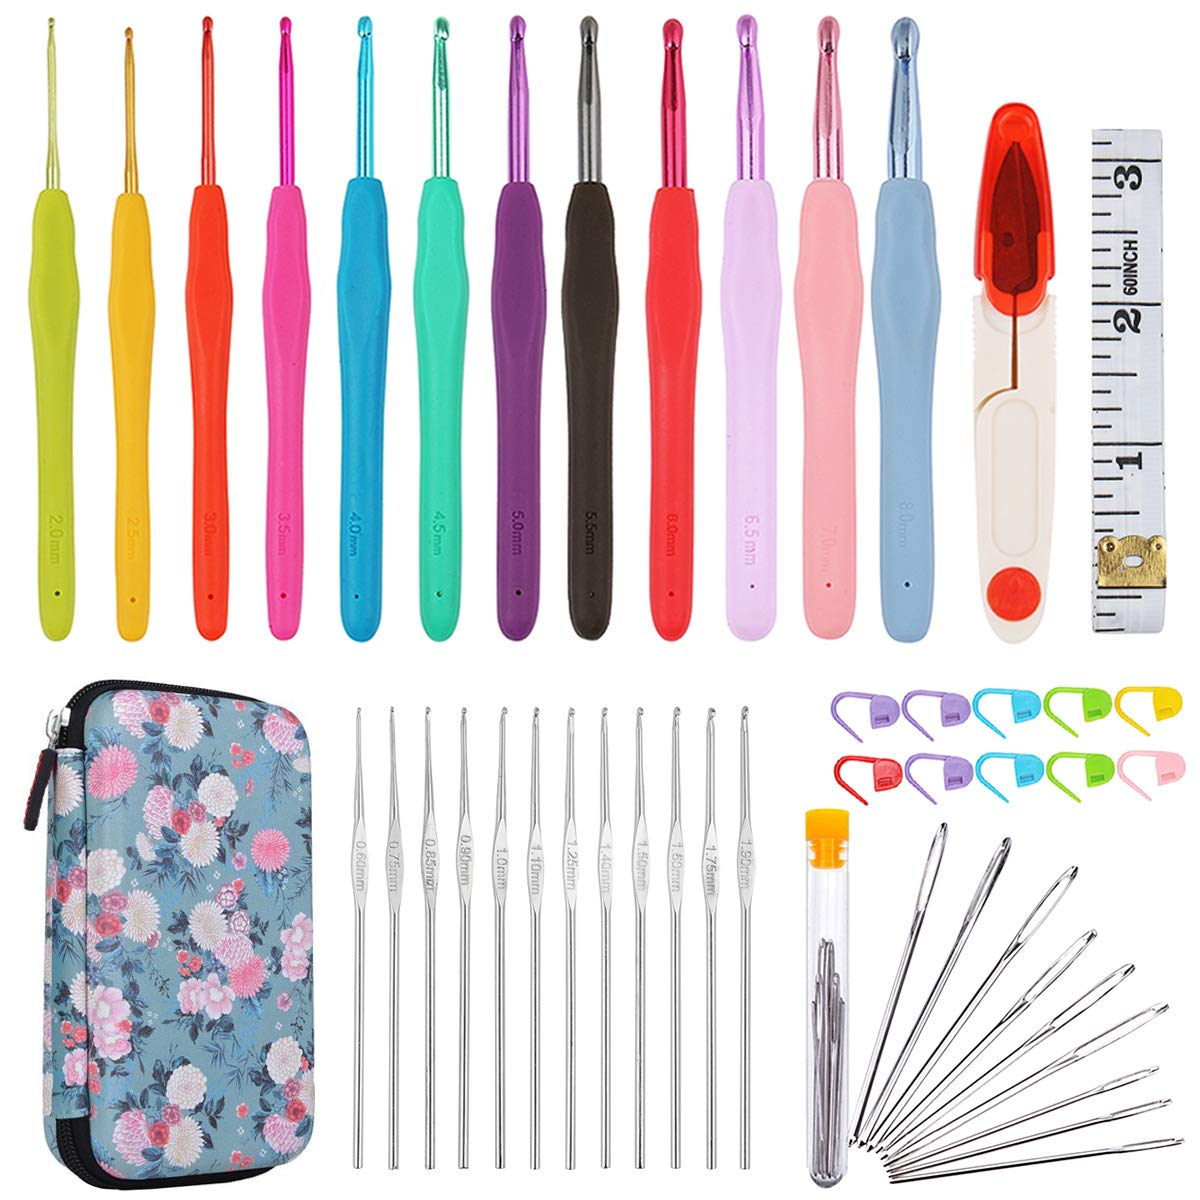 Comecase All-in-One Crochet Hooks Set Plus Large-Eye Blunt Needles Yarn Knitting with Case and More Accessories! Ergonomic Handle for Extreme Comfort